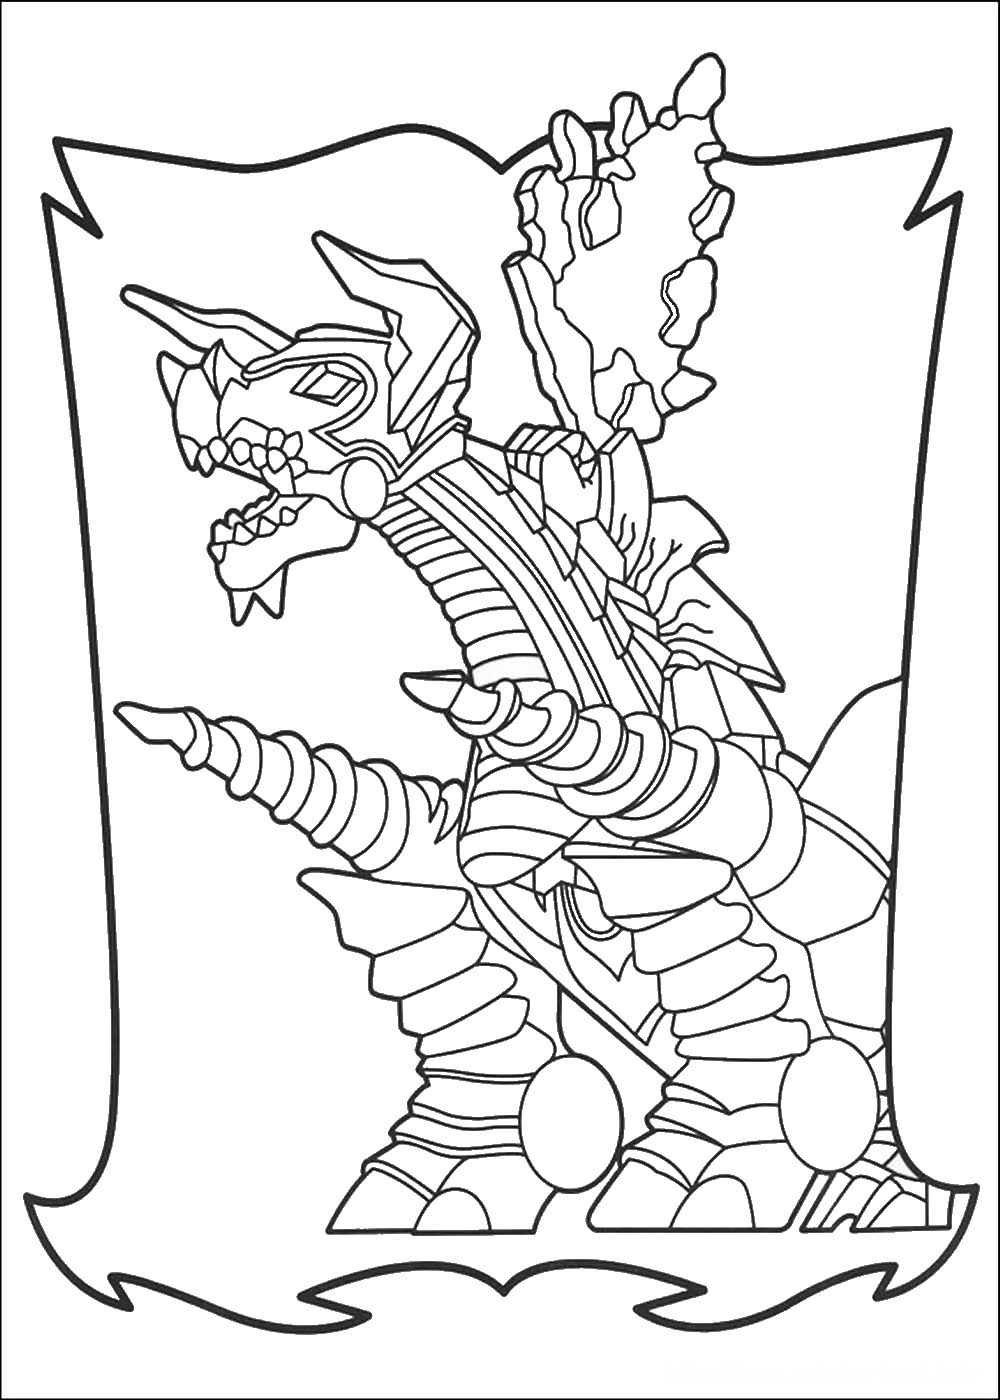 power rangers color pages power rangers coloring pages rangers color power pages